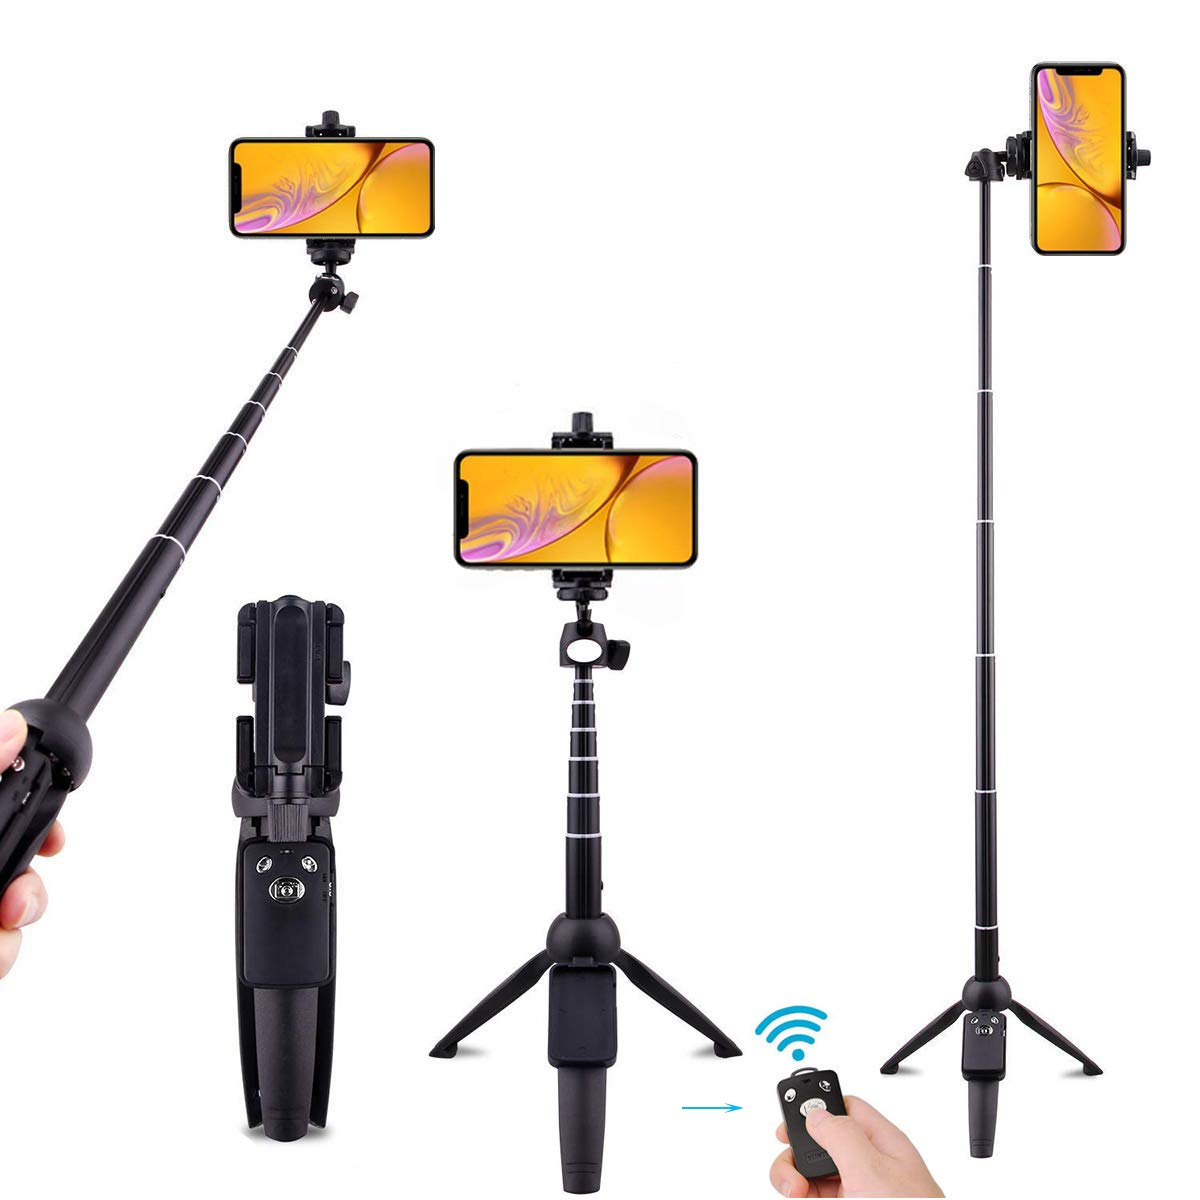 Selfie Stick Bluetooth,All-in-One Professional Cell Phone Tripod Stand 40 Inch Extendable with Wireless Remote Camera Shutter Compatible with iPhone Samsung iOS Android Huawei and More by YunTeng